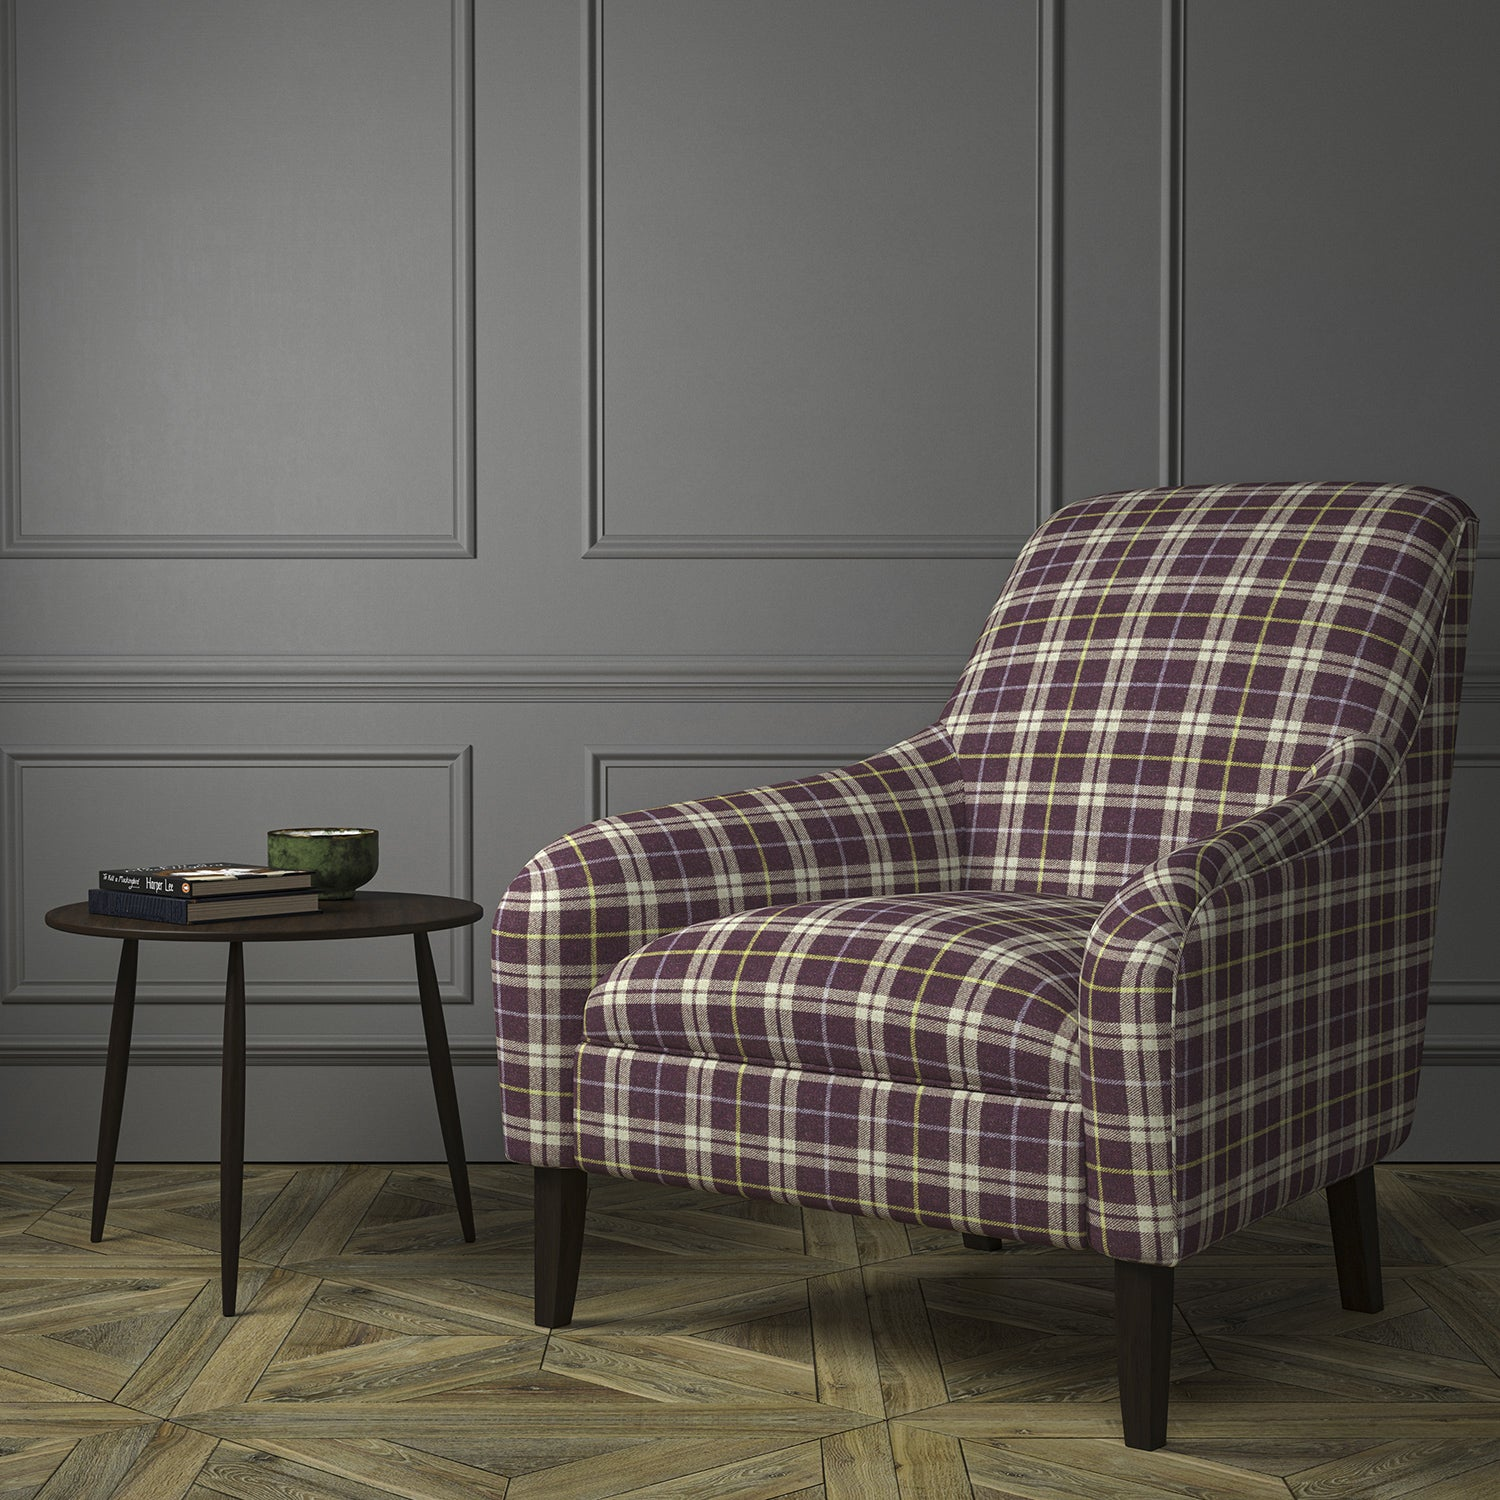 Chair upholstered in a purple Scottish wool plaid check fabric